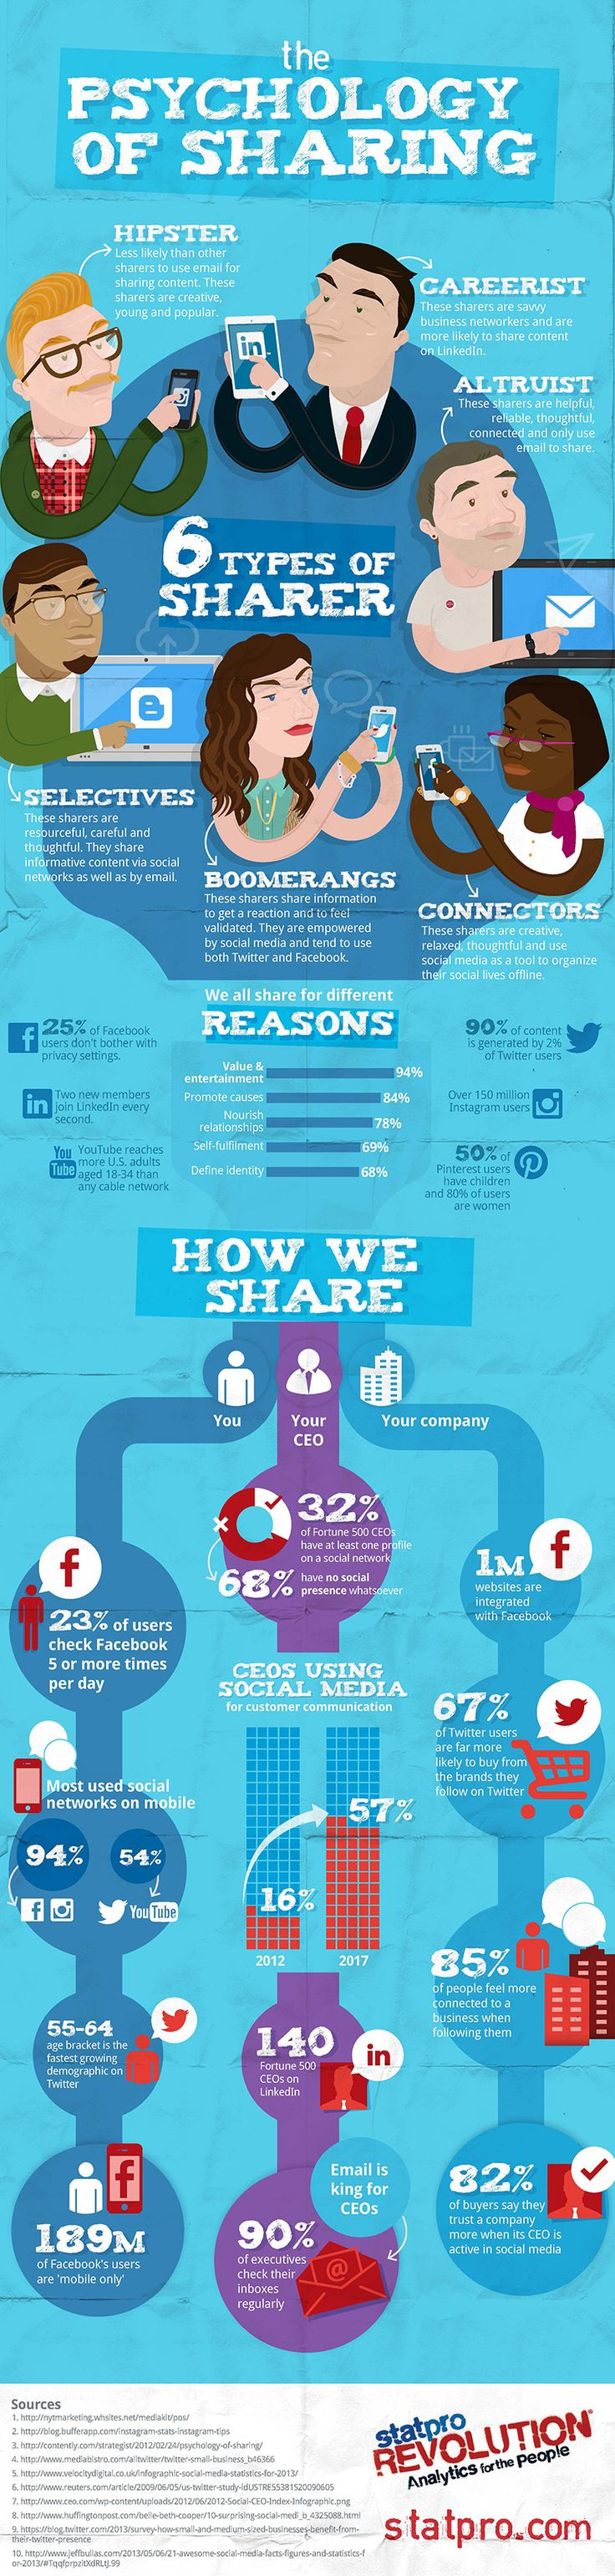 The psychology of social sharing #socialmedia via @leaderswest. #infographic